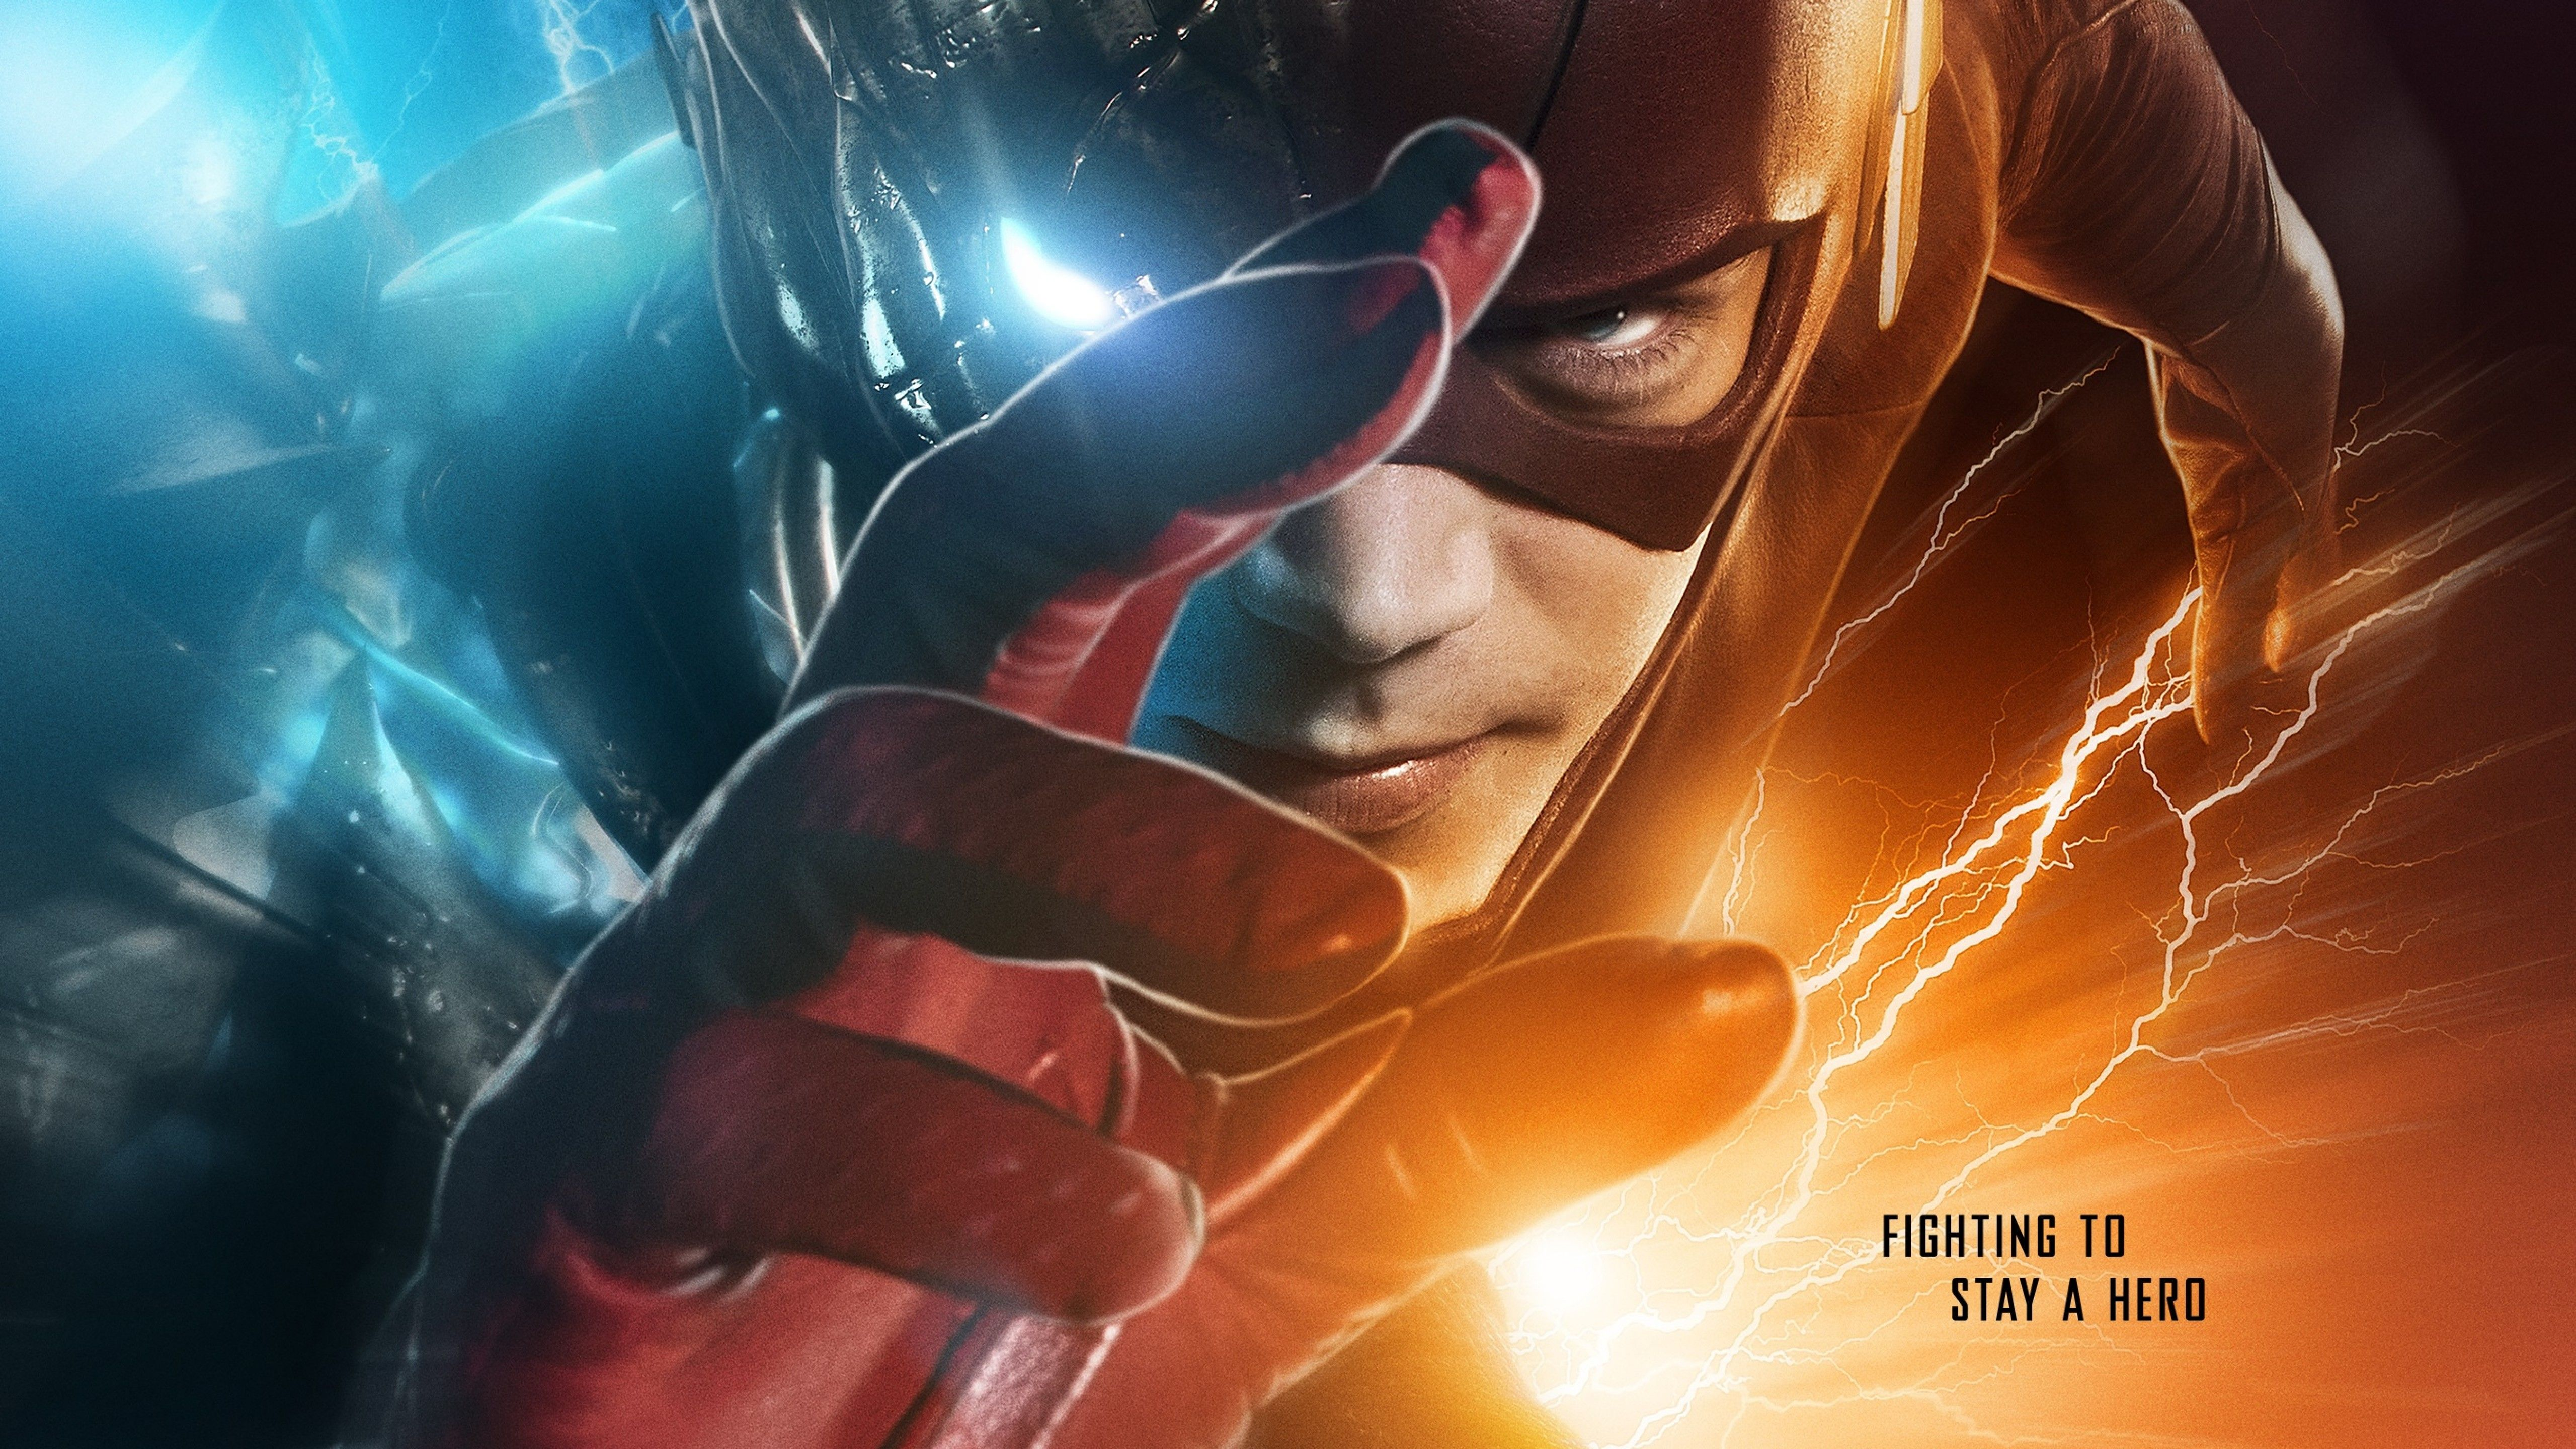 The Flash 4K Wallpapers - Top Free The Flash 4K Backgrounds -  WallpaperAccess